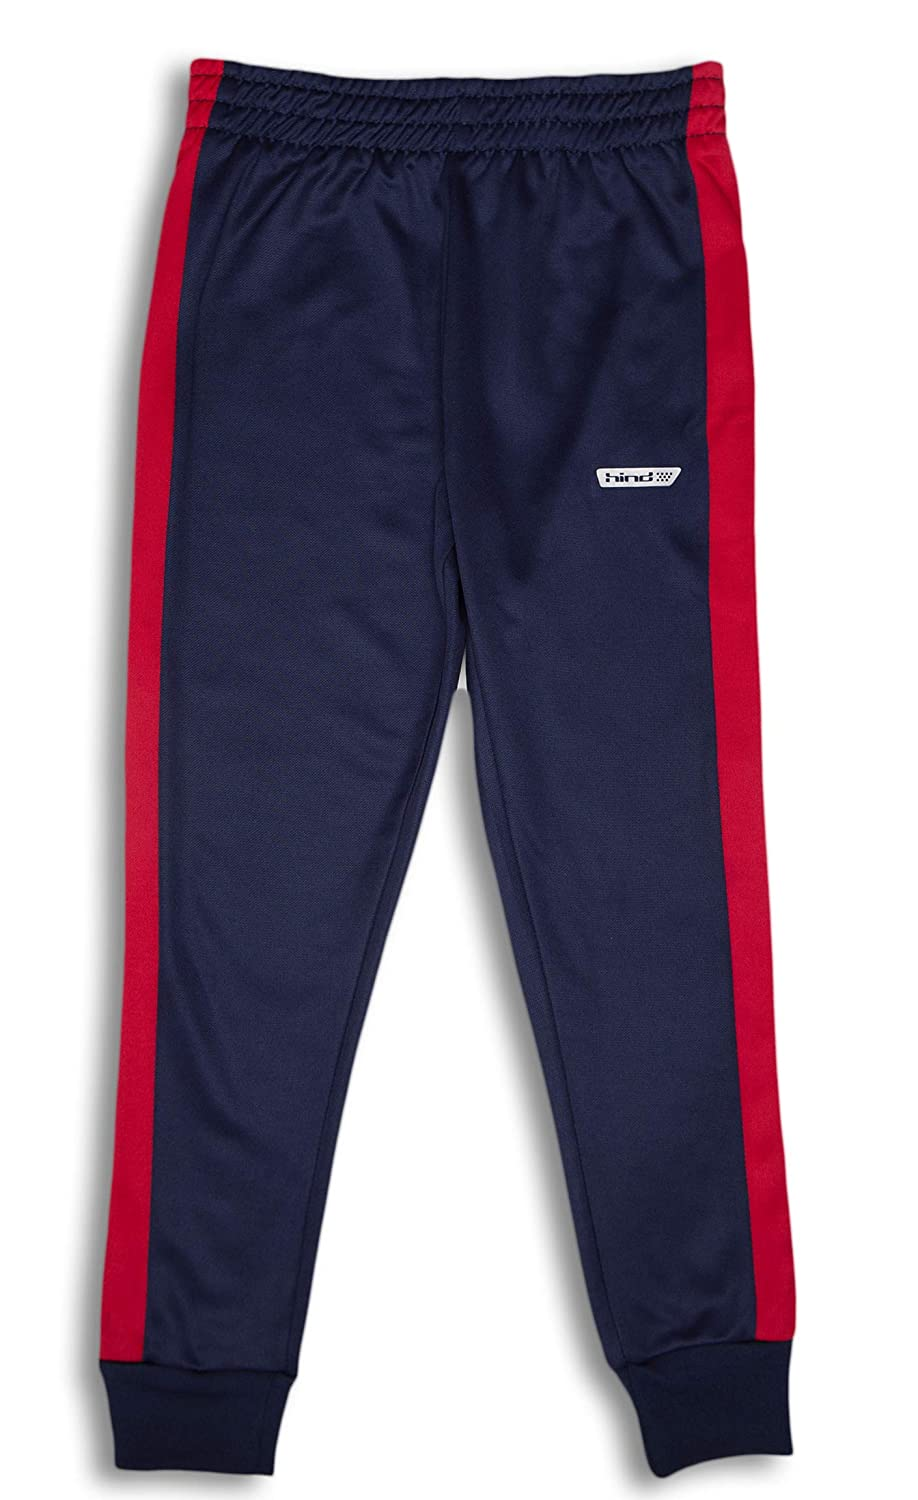 Hind Boys 4PC Hoodie and Sweatpant Set for Jogging and Track